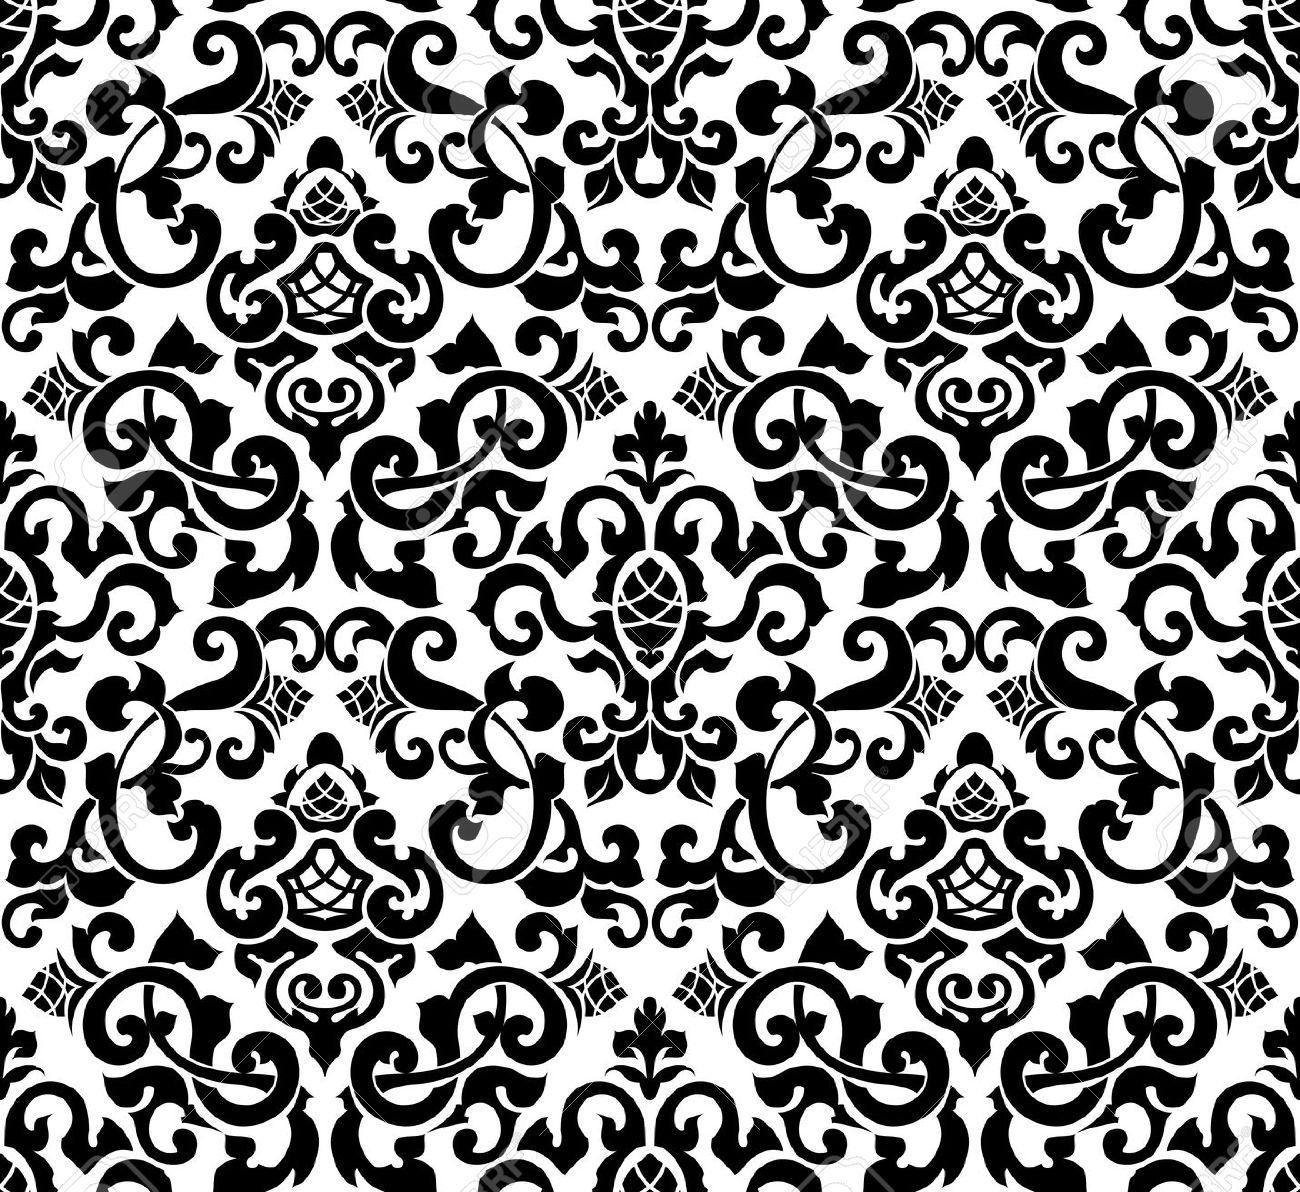 17148771-Black-seamless-pattern-silhouette-Stock-Vector ...